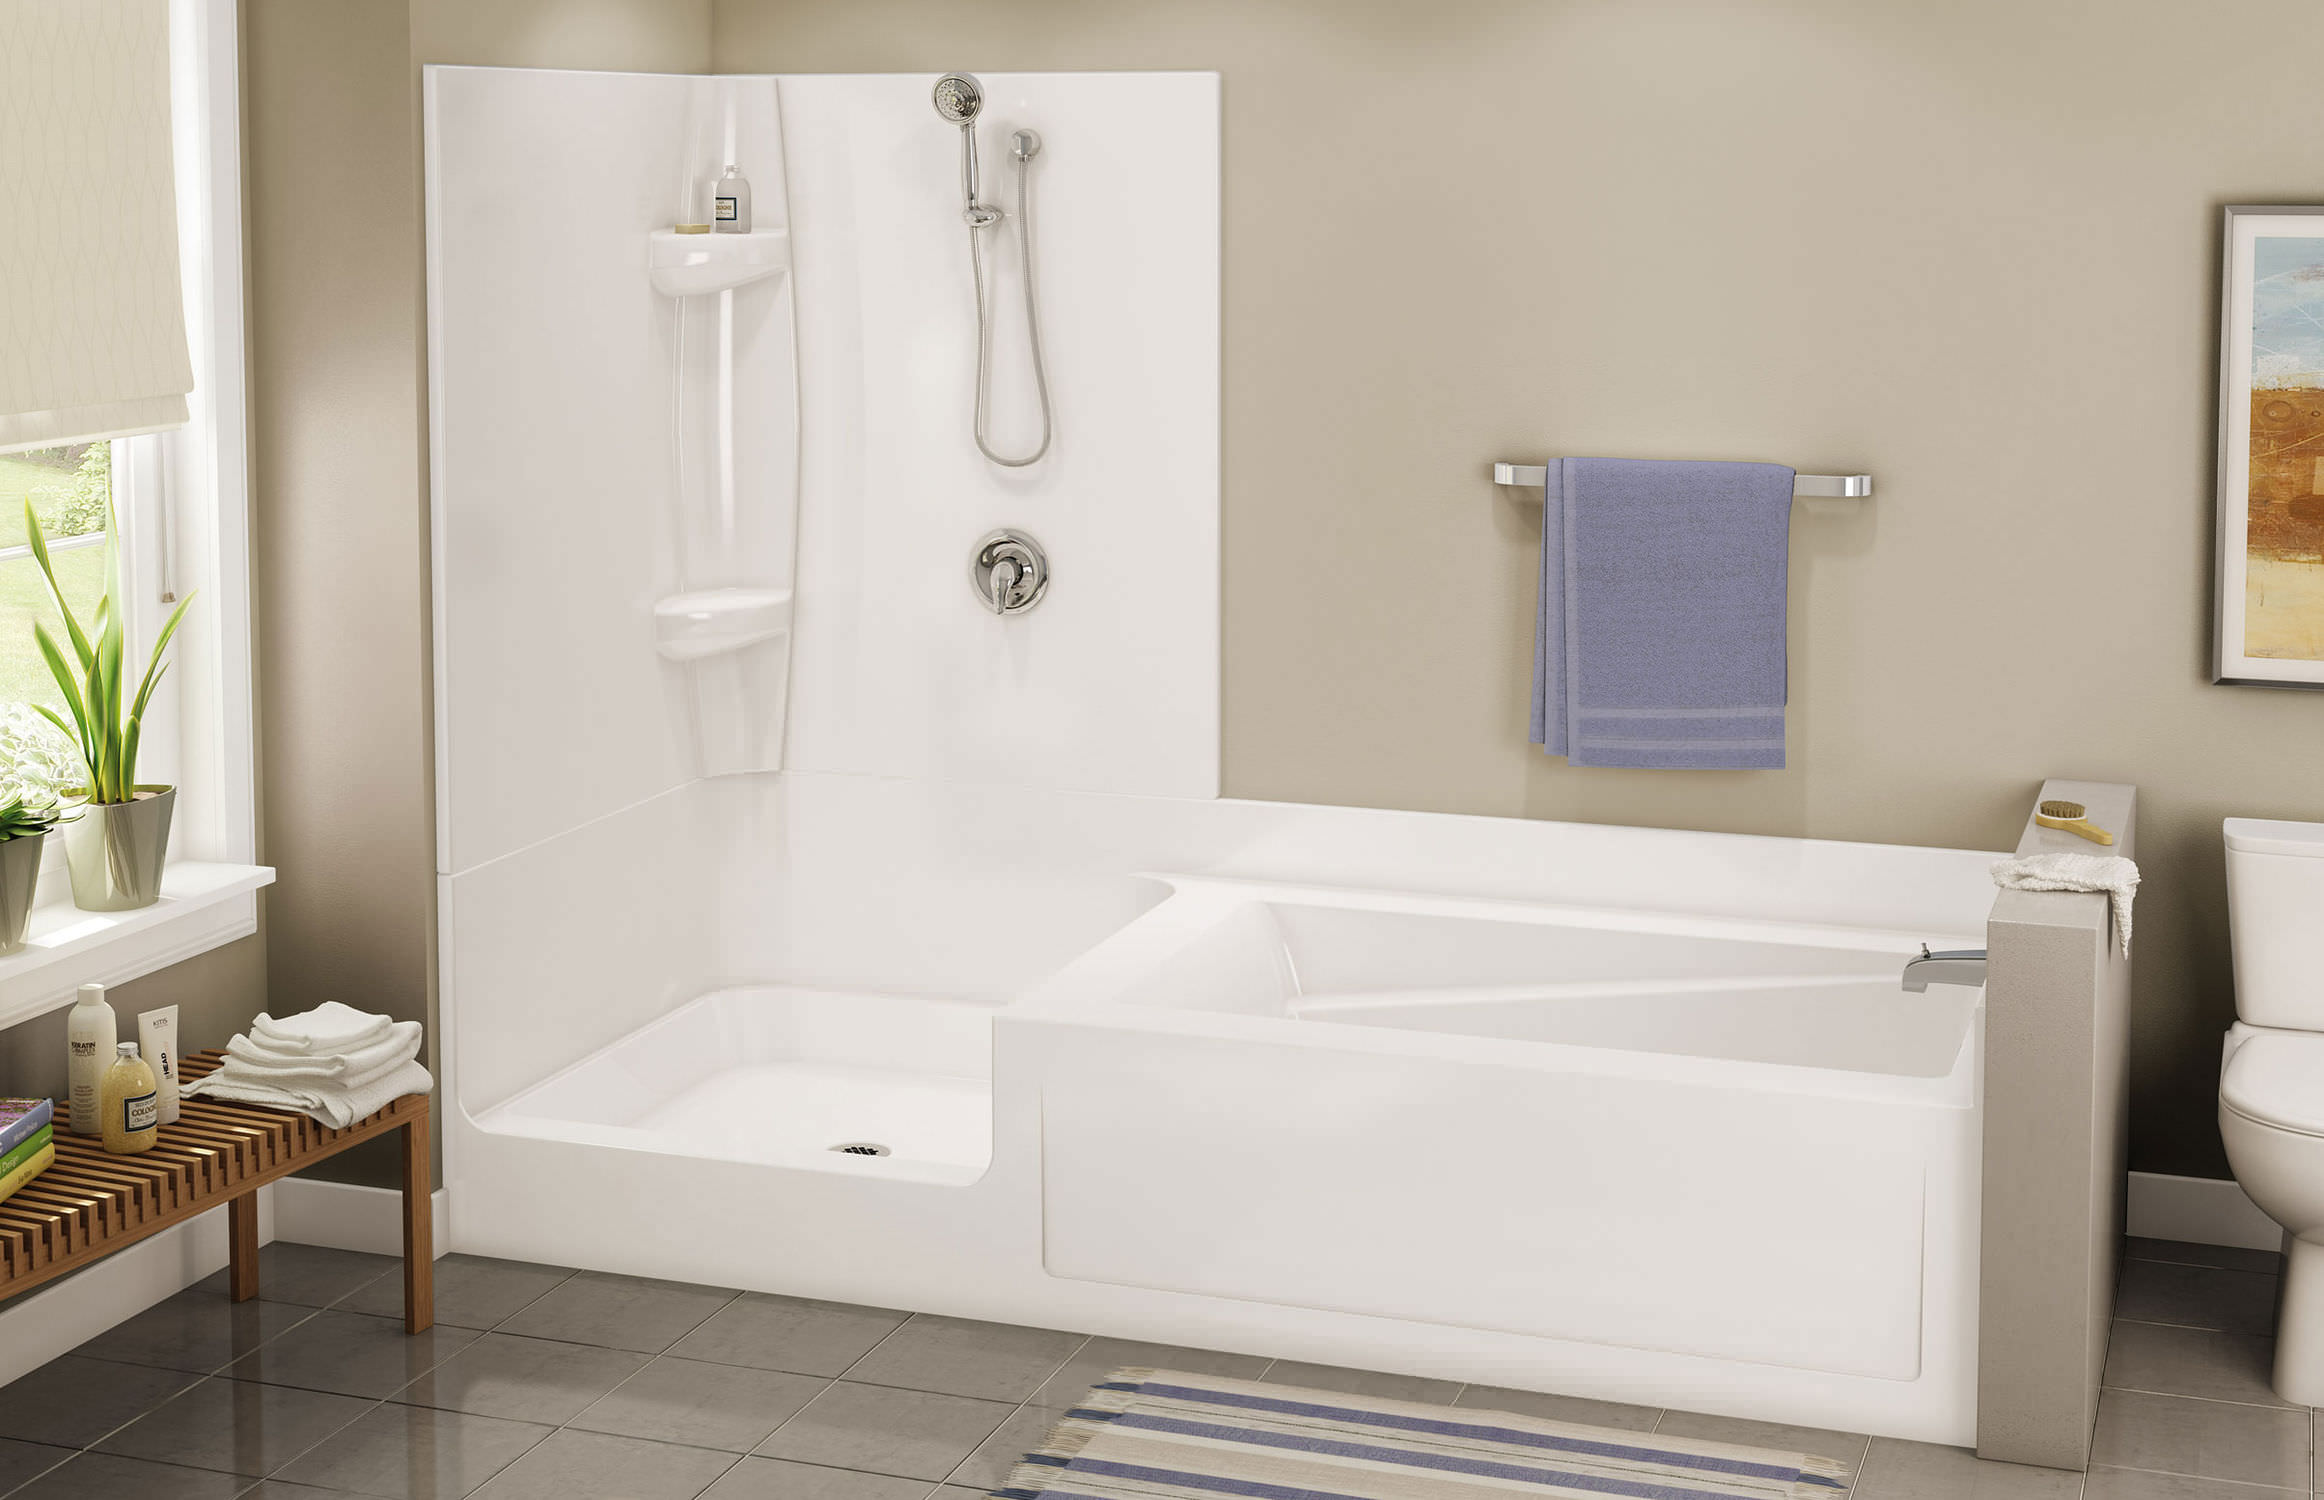 Acrylic One Piece Tub Shower. Built in bathtub shower combination  rectangular acrylic EXHIBIT TSC 102